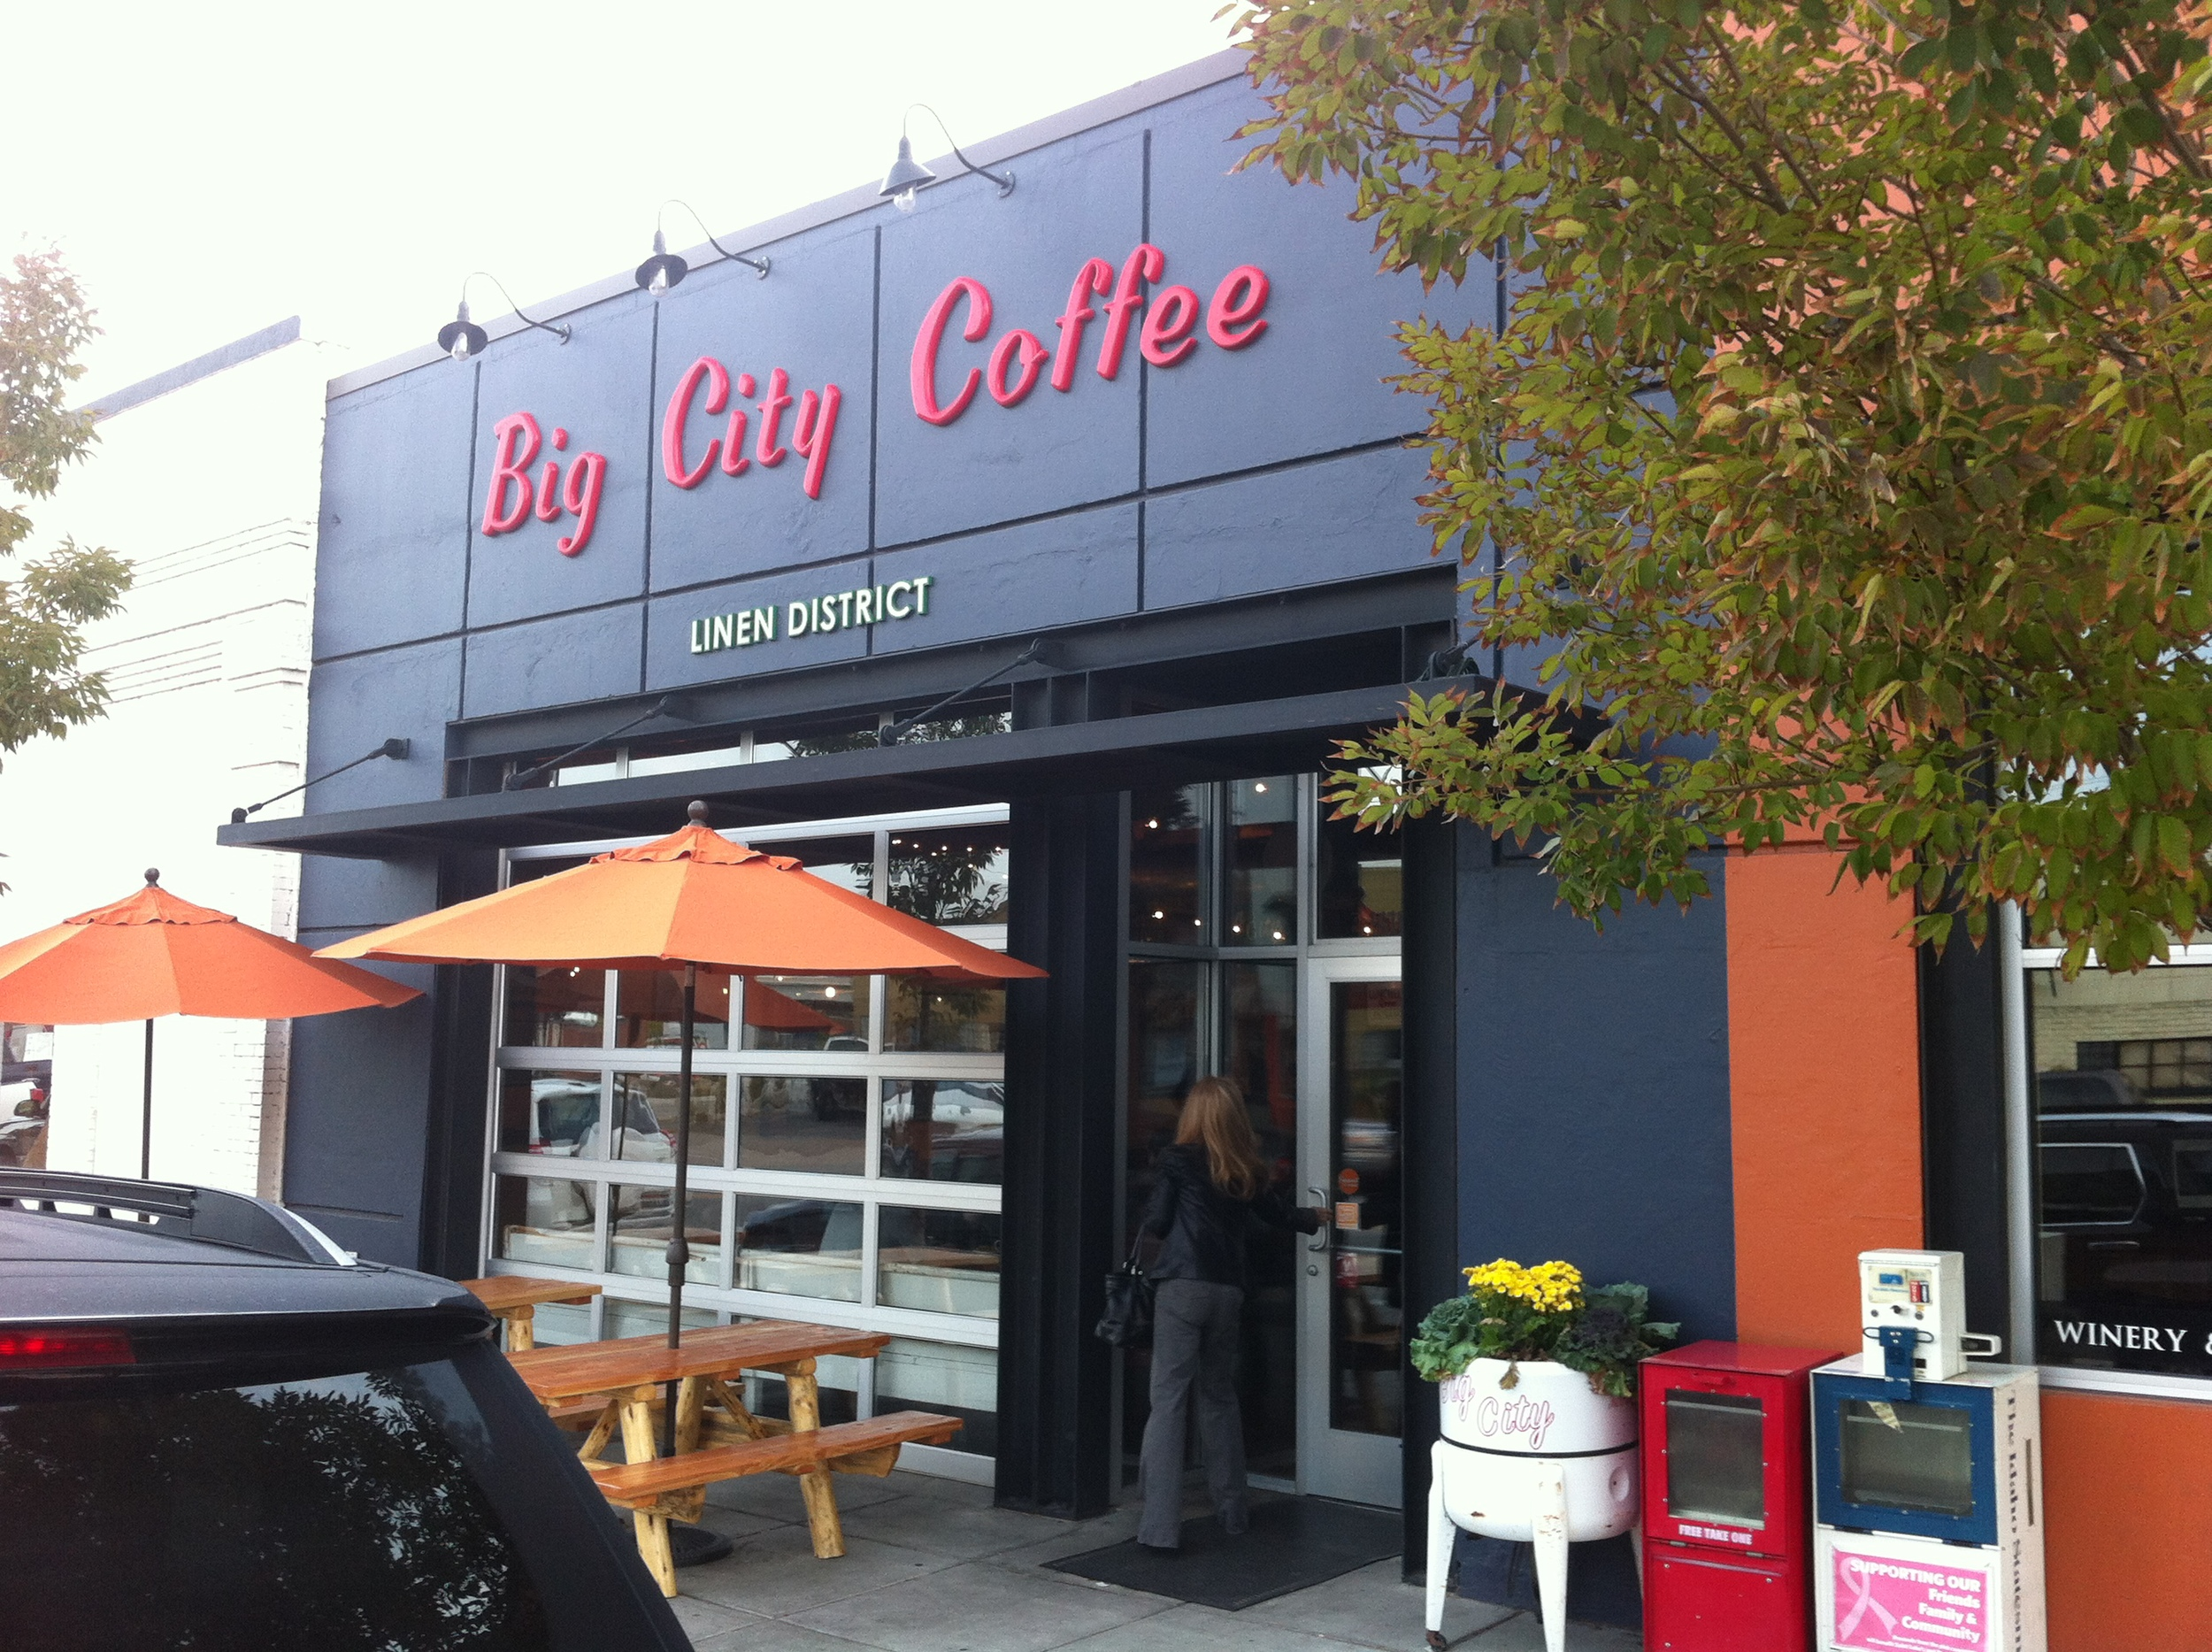 Big City Coffee has a great street appeal that makes it very welcoming.